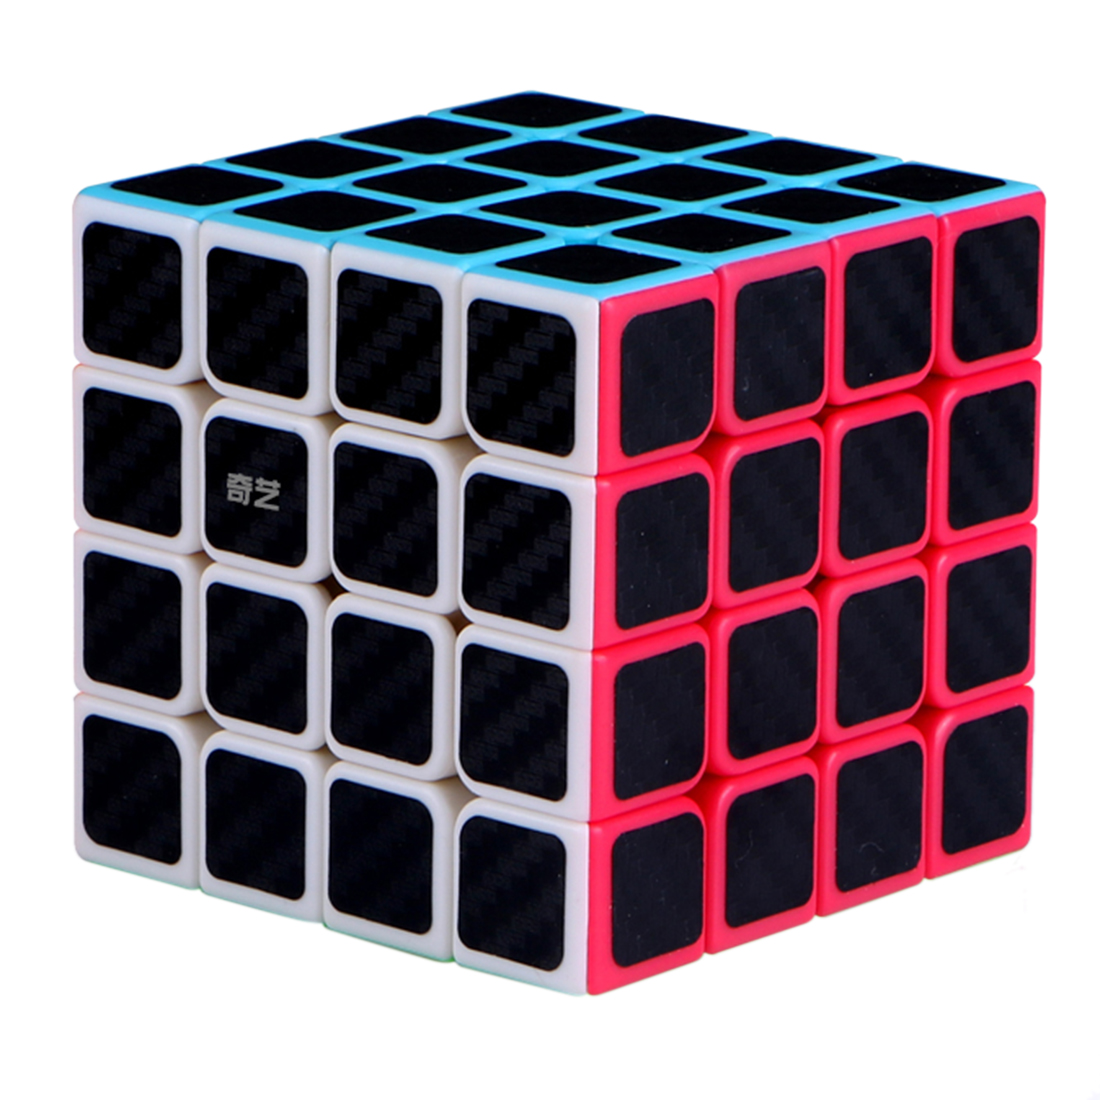 Surwish <font><b>Qiyi</b></font> <font><b>Qiyuan</b></font> <font><b>S</b></font> <font><b>4x4</b></font> Stickered Version Magic Cube Speed Cubes Puzzles Toys 2019 new arrival image